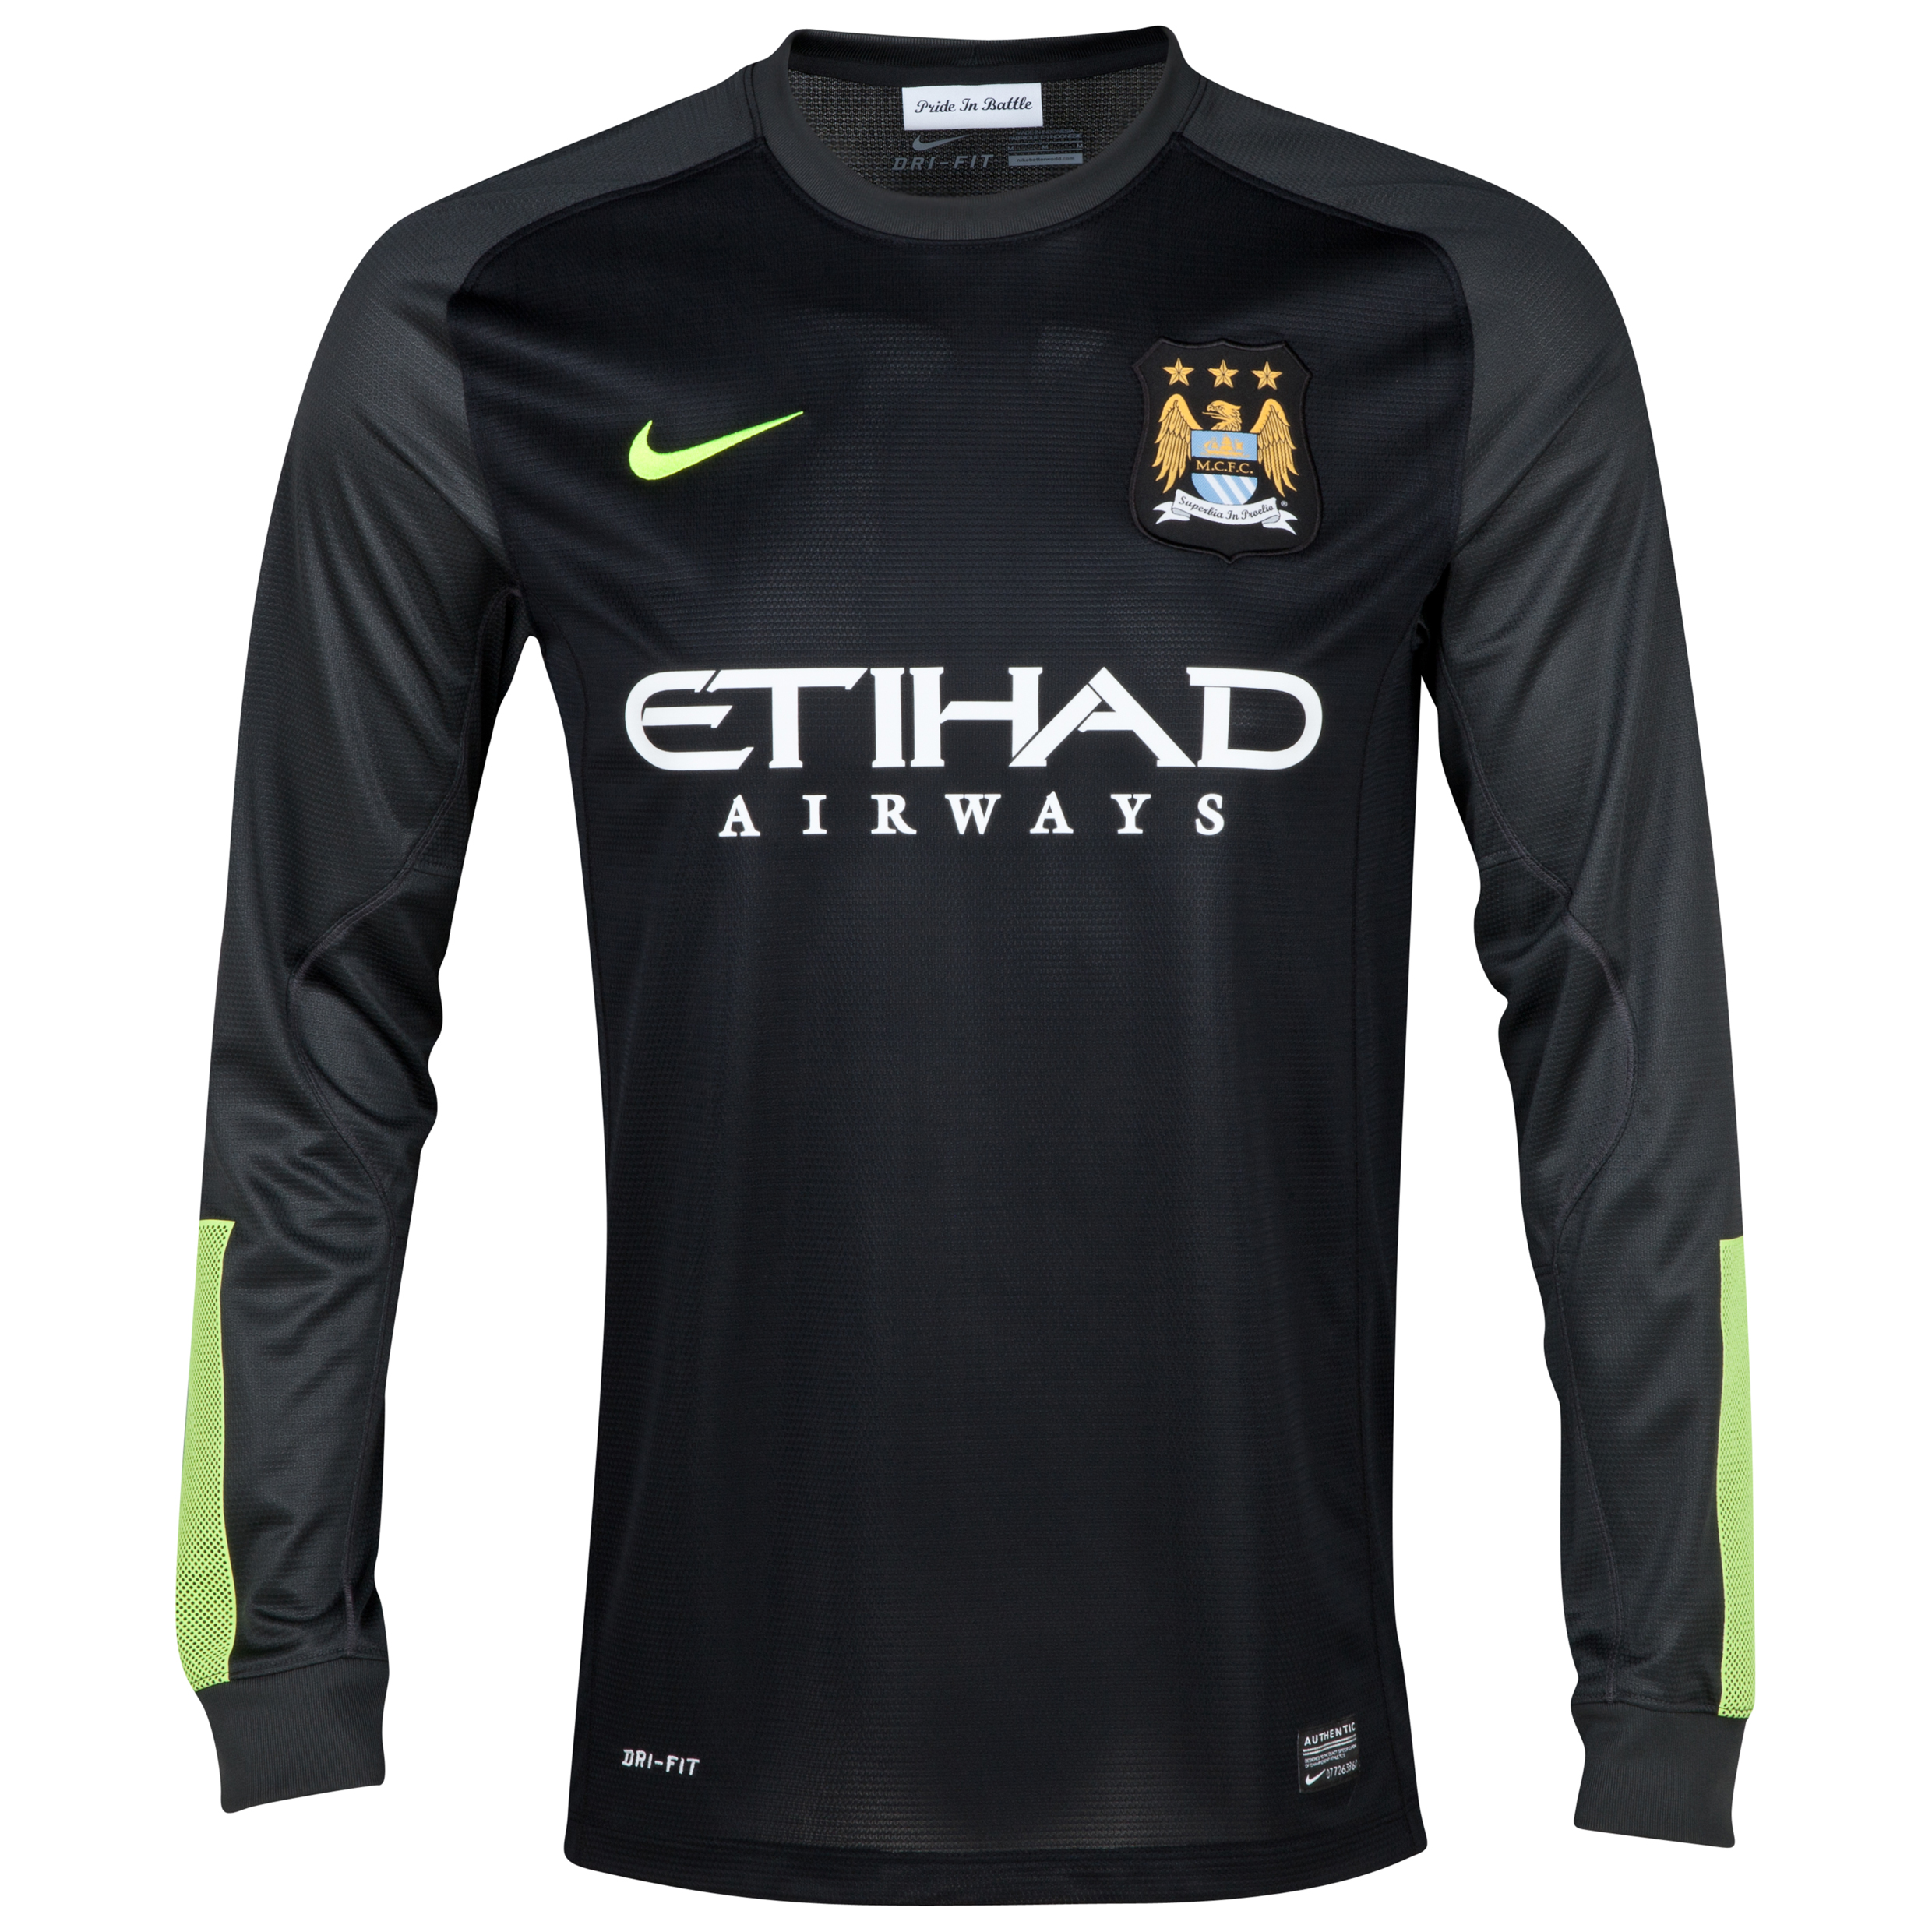 Manchester City Option 2 Goalkeeper Shirt 2013/14 - Junior - Black